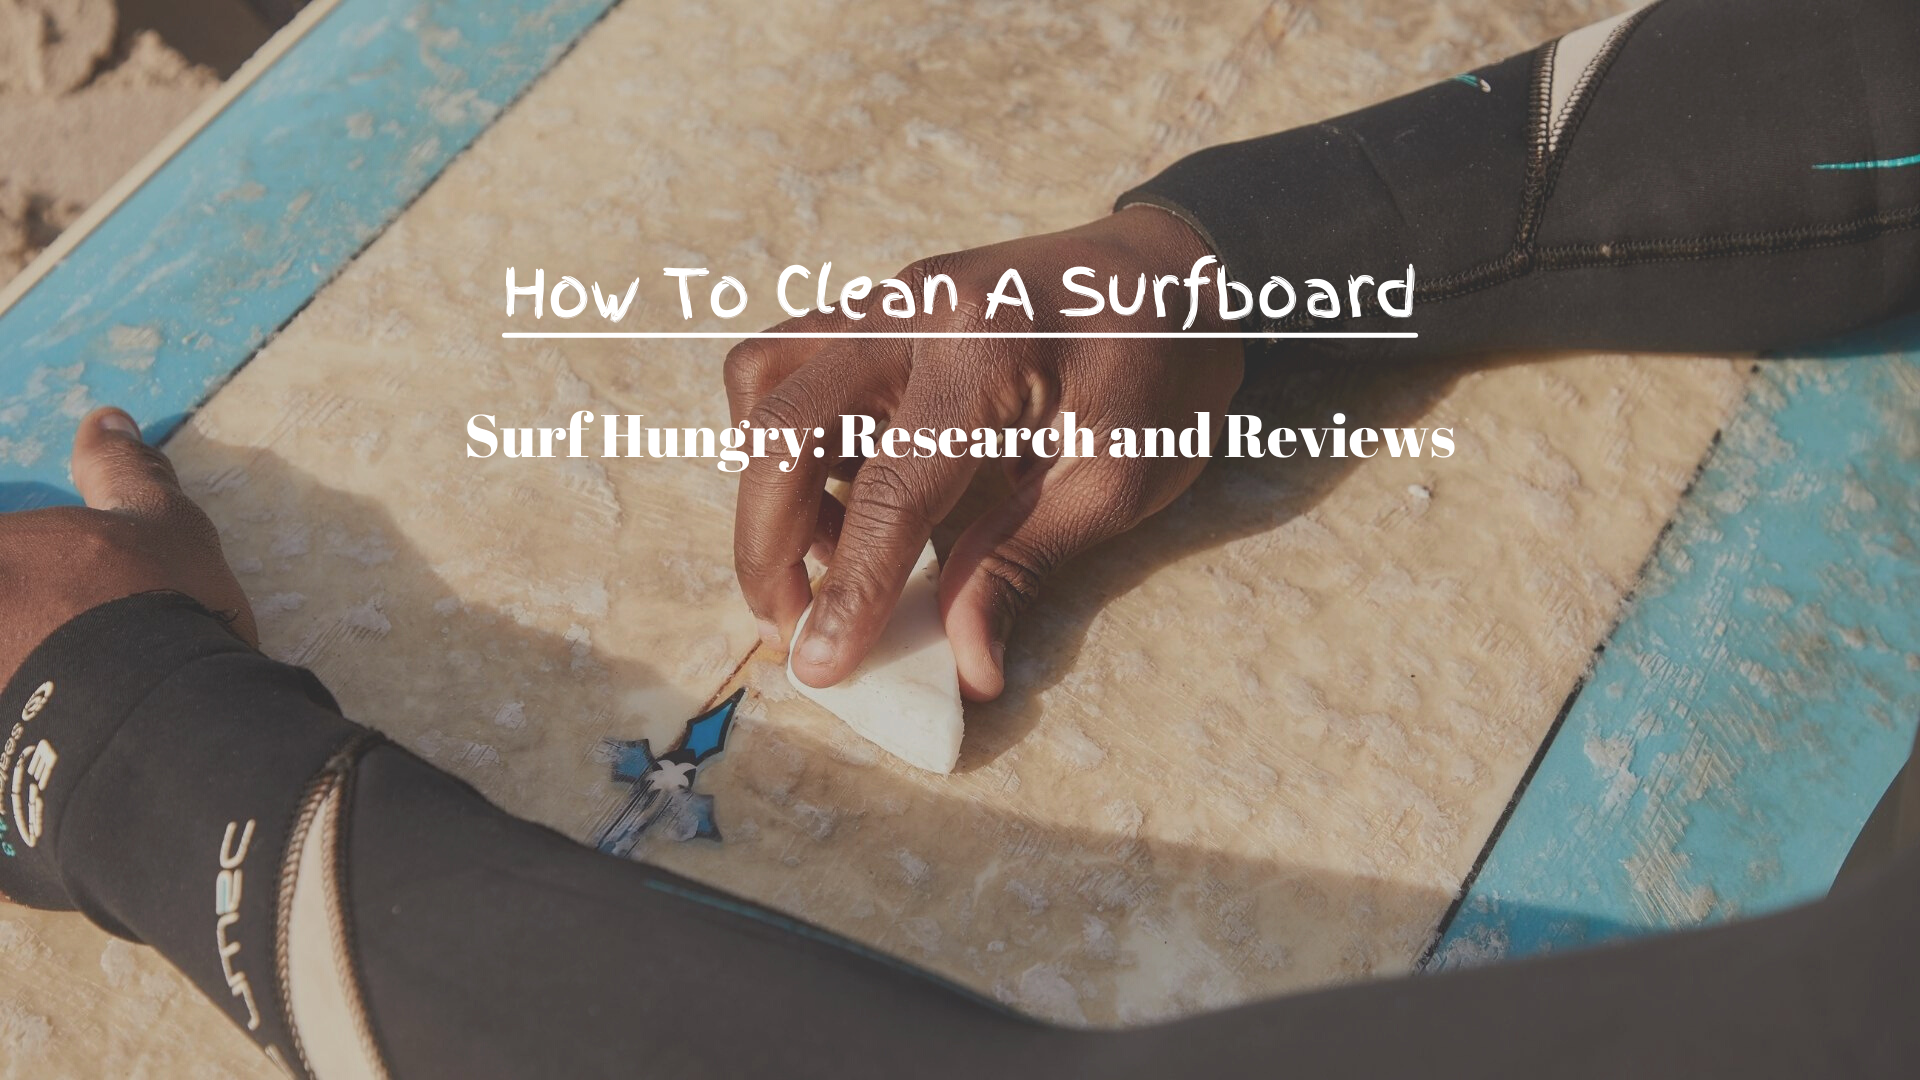 How To Clean A Surfboard